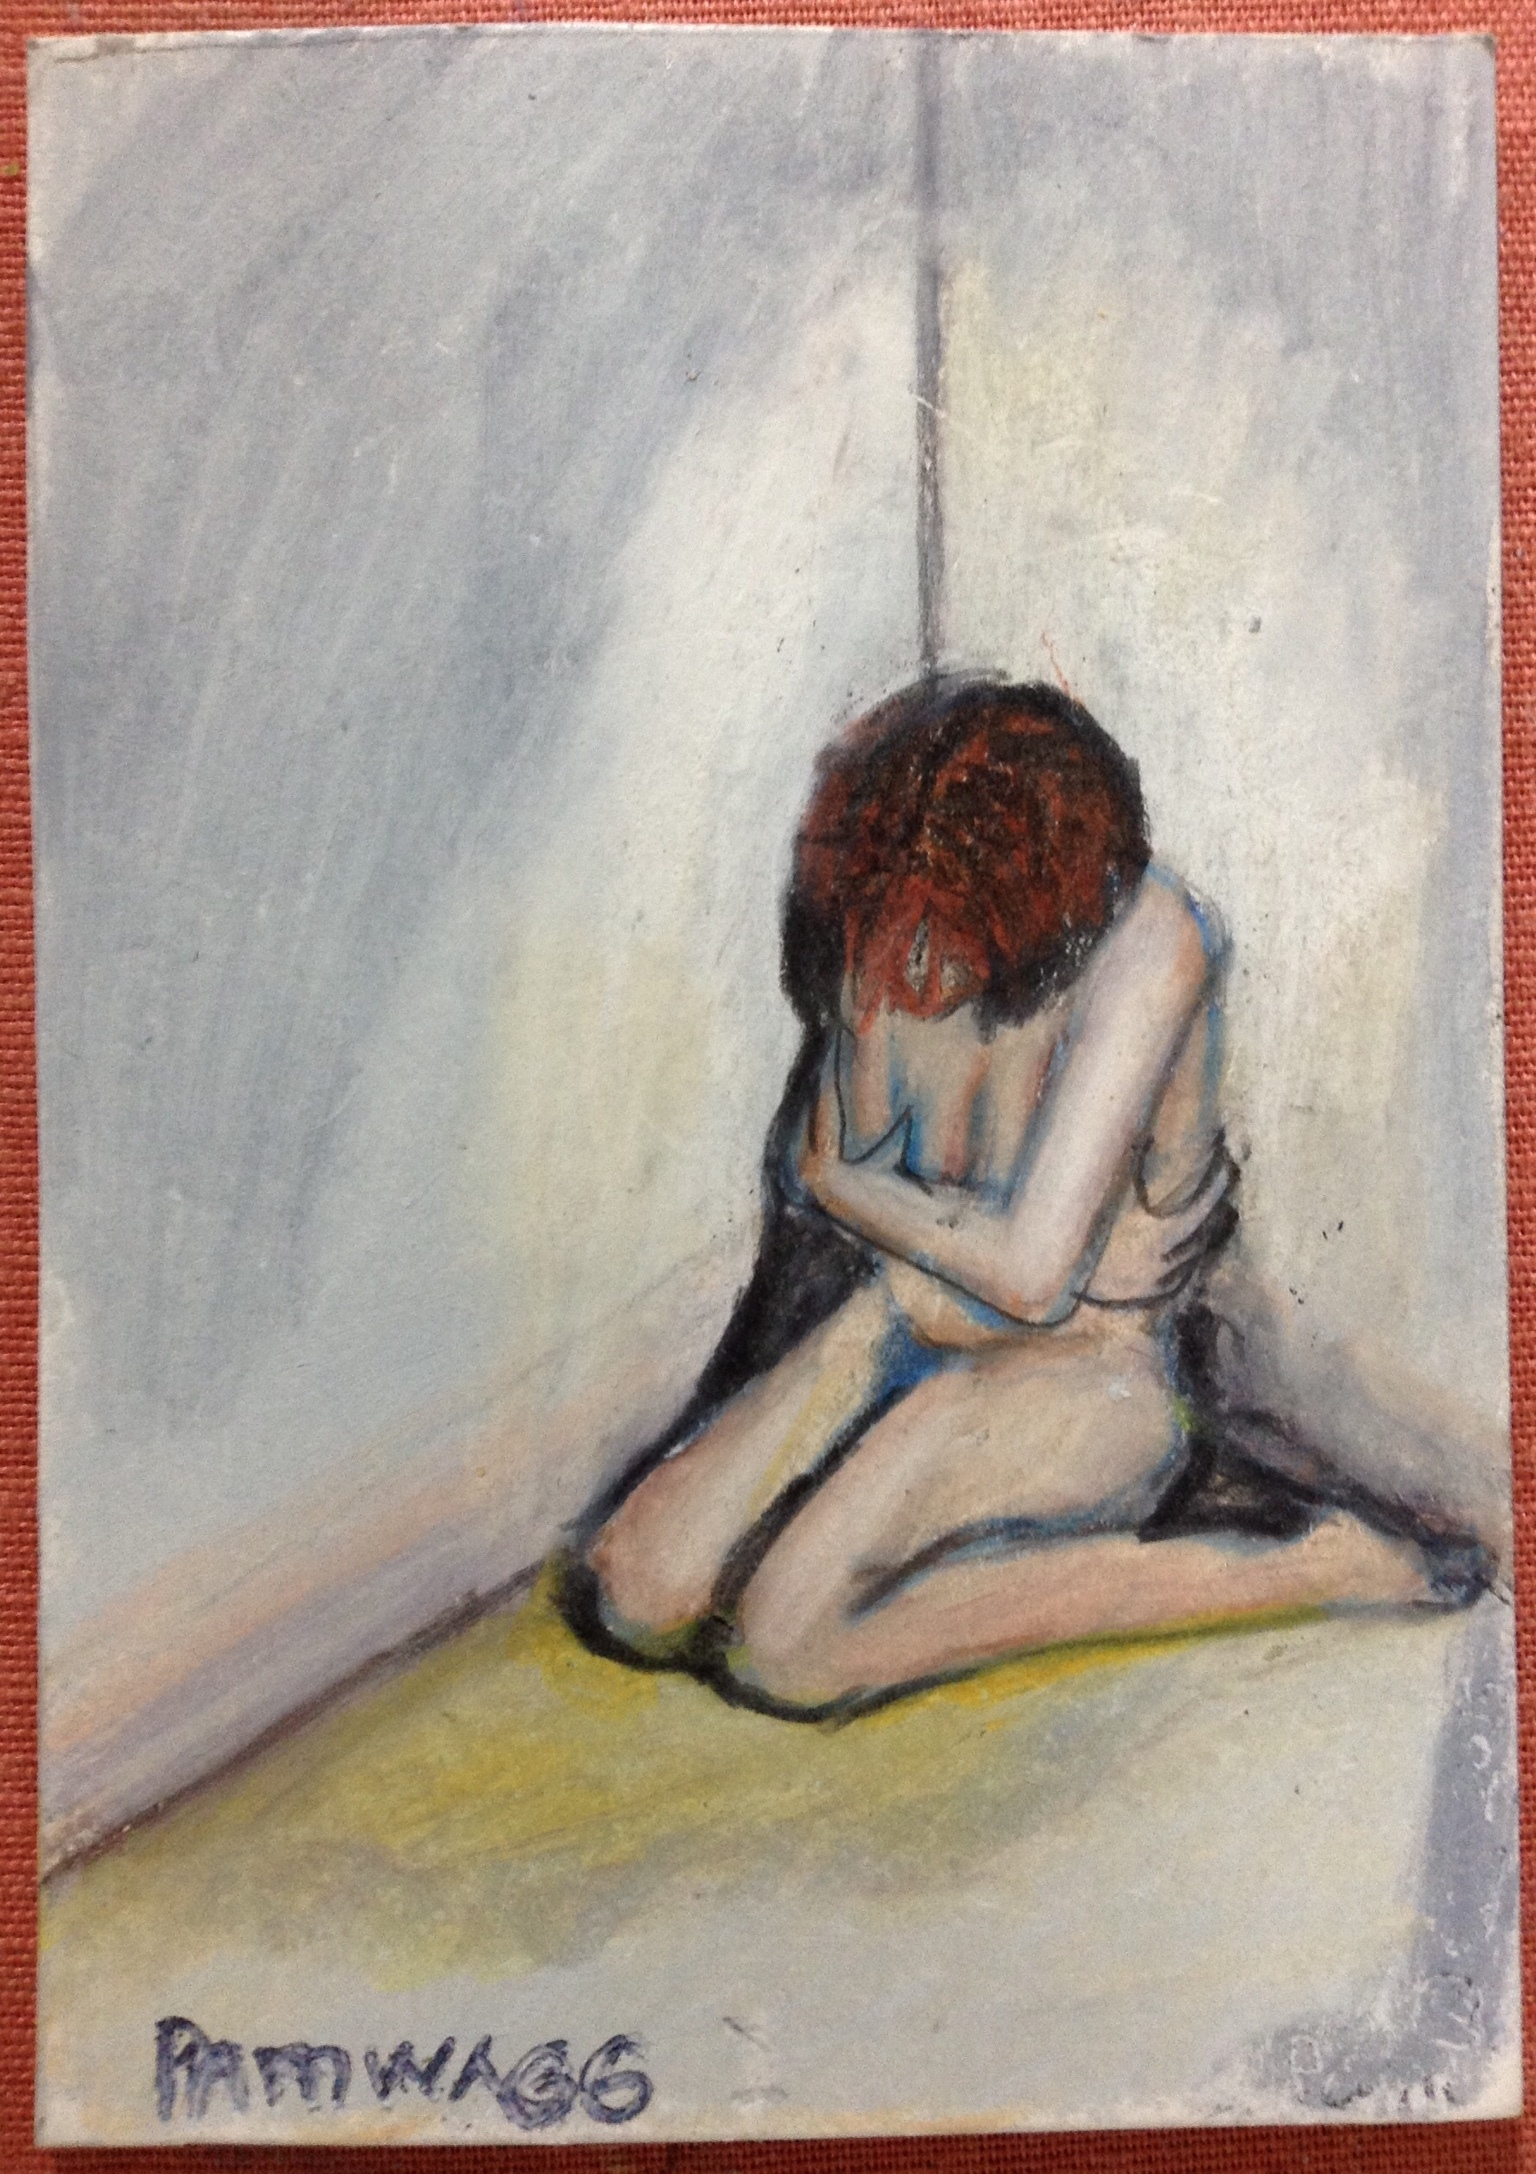 Image of a naked woman huddled in a corner